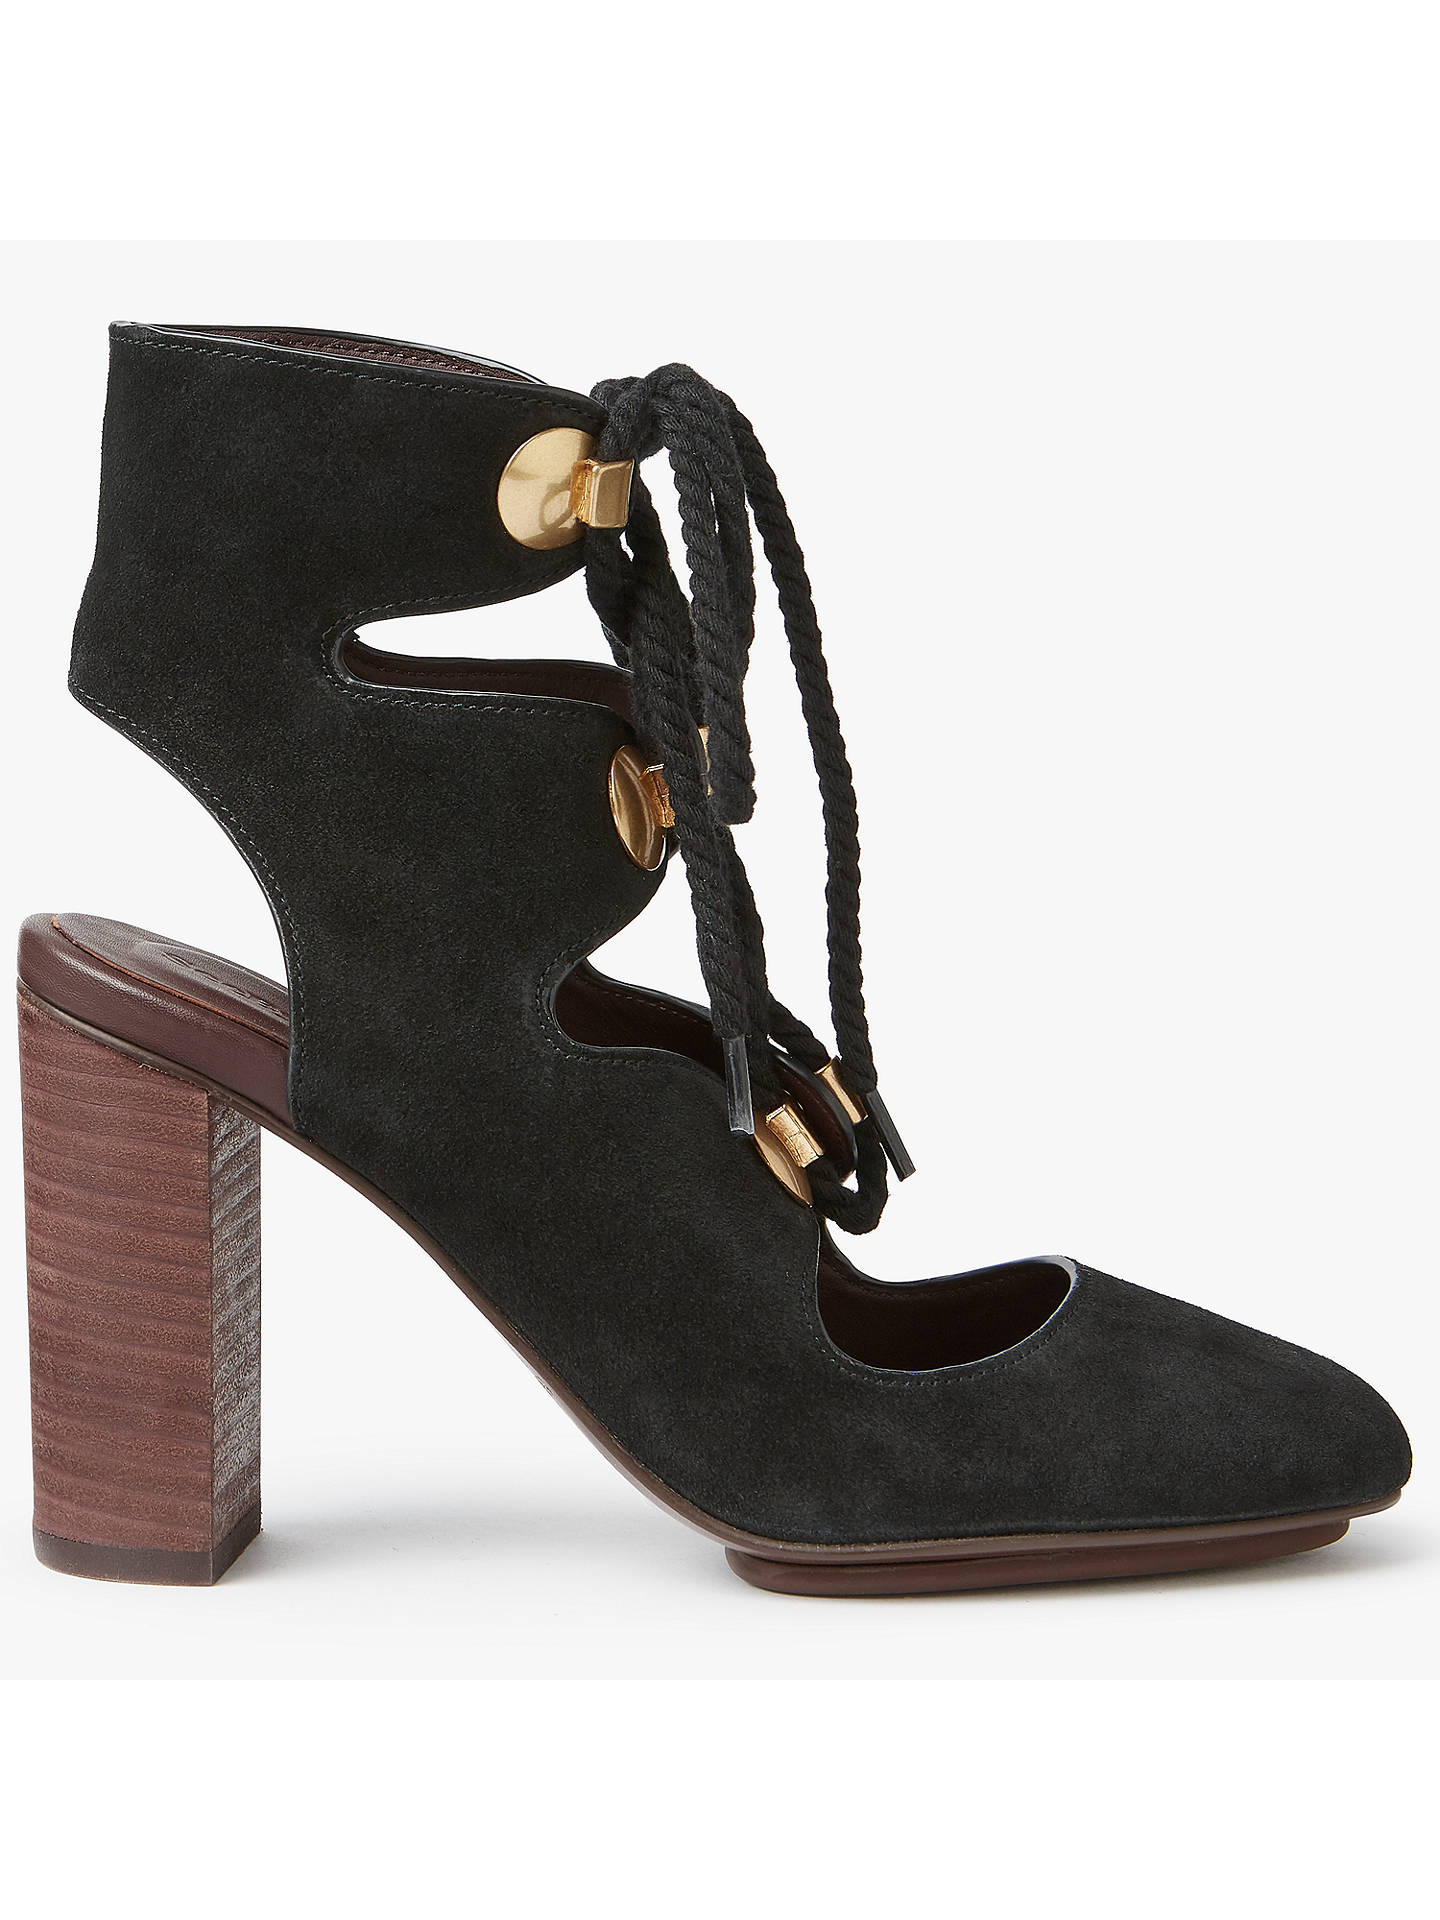 421c9991d Buy See by Chloé Edna Lace Up Block Heeled Court Shoes, Black, 4 Online ...